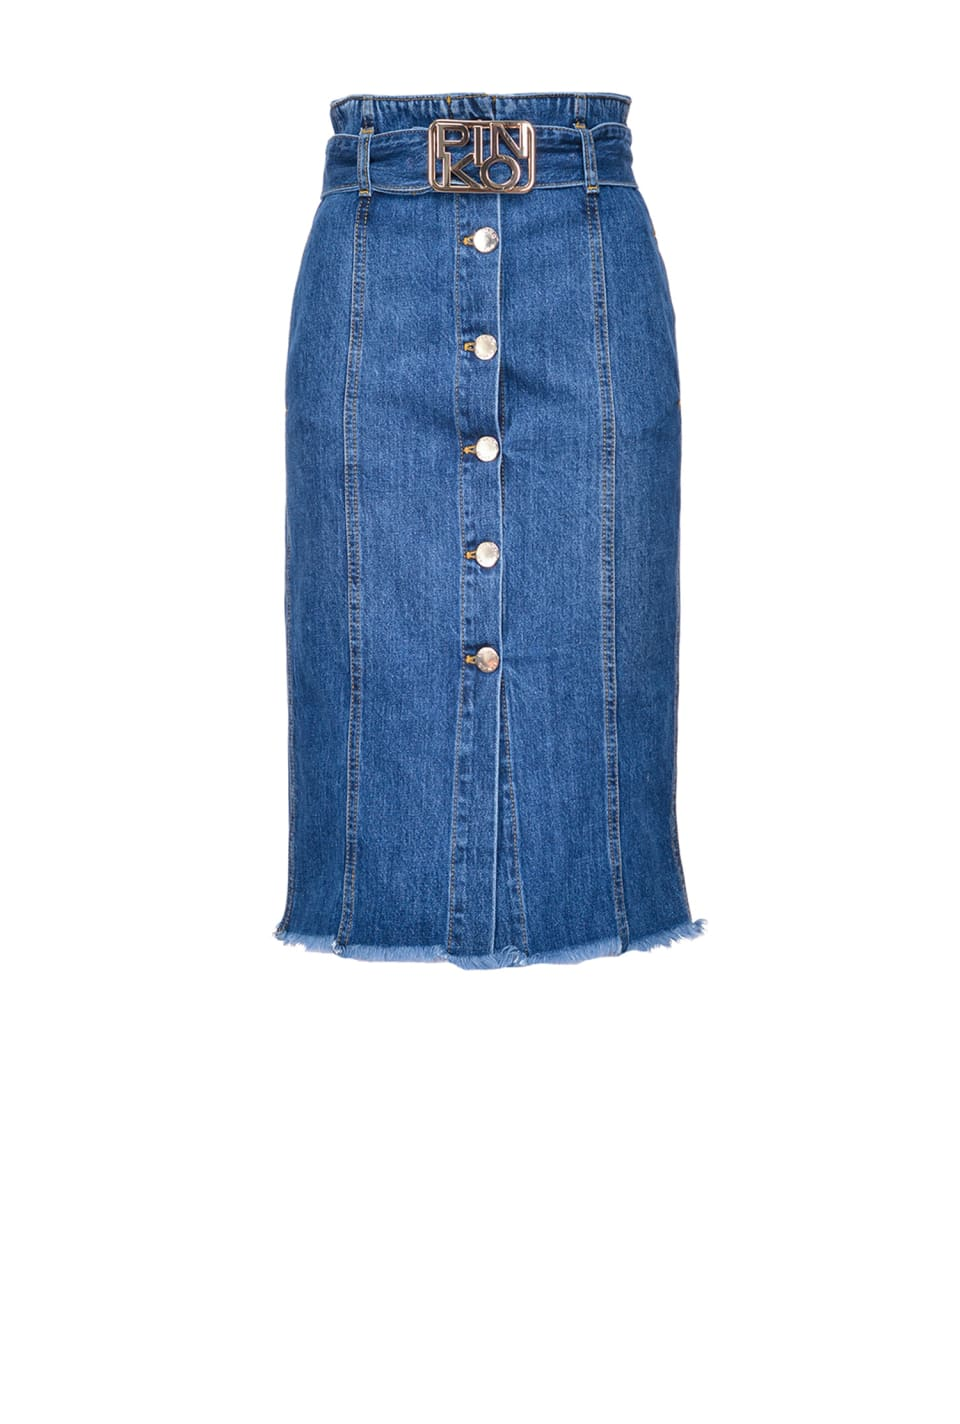 Midi-length vintage denim skirt